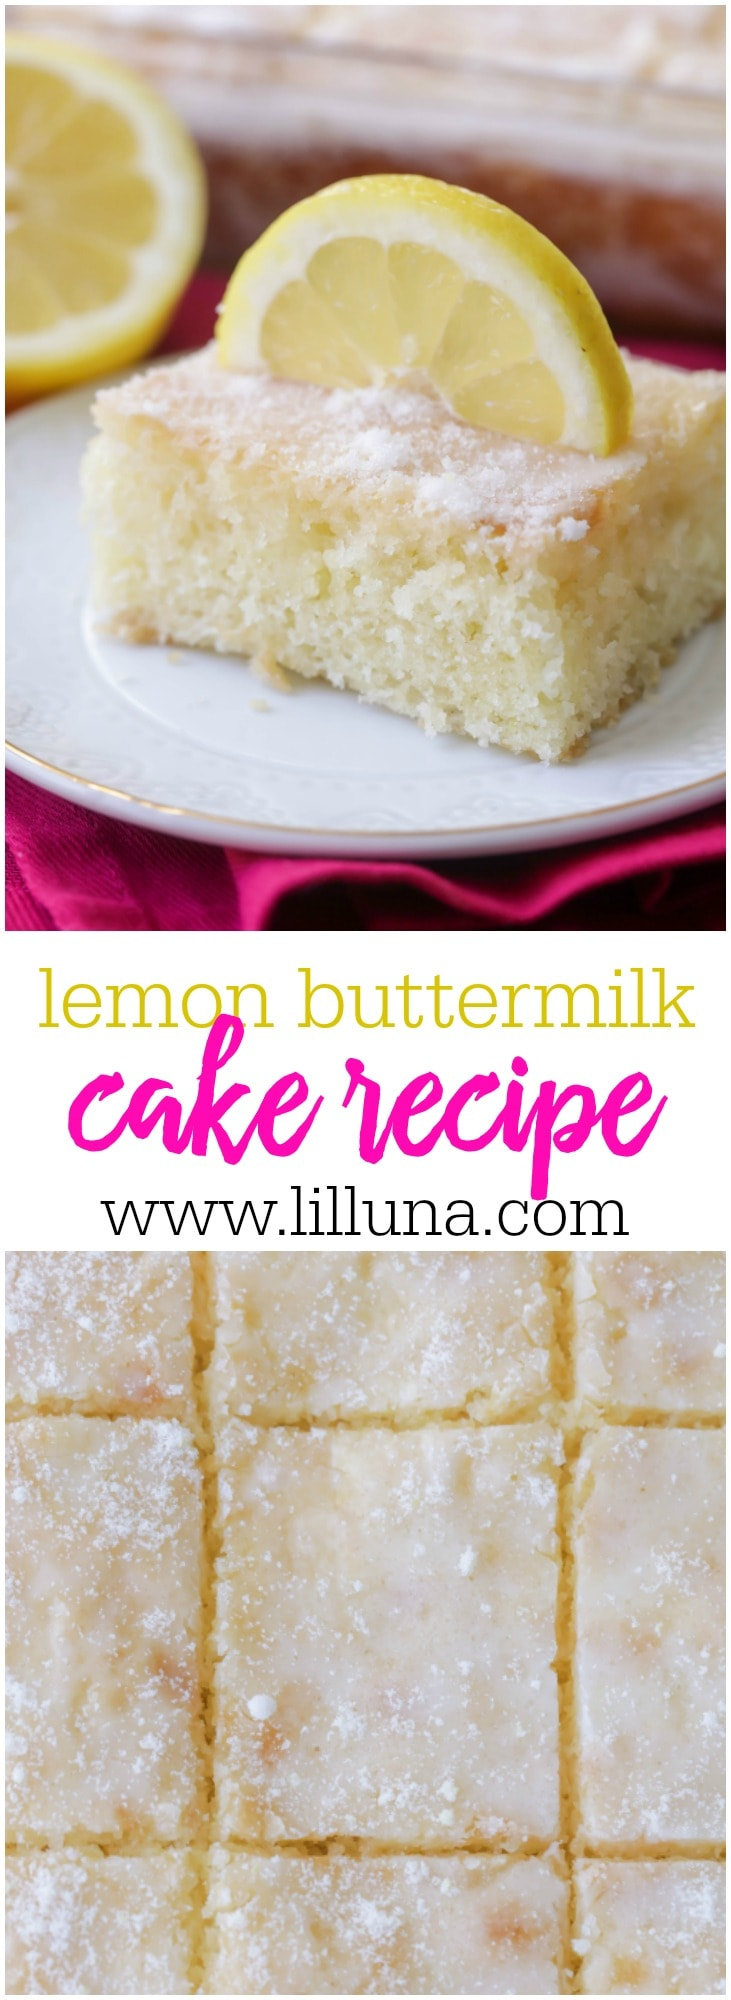 Lemon cake baked with a lemon zest and topped with a delicious lemony glaze! The perfect amount of lemon flavor and perfect any time of year!